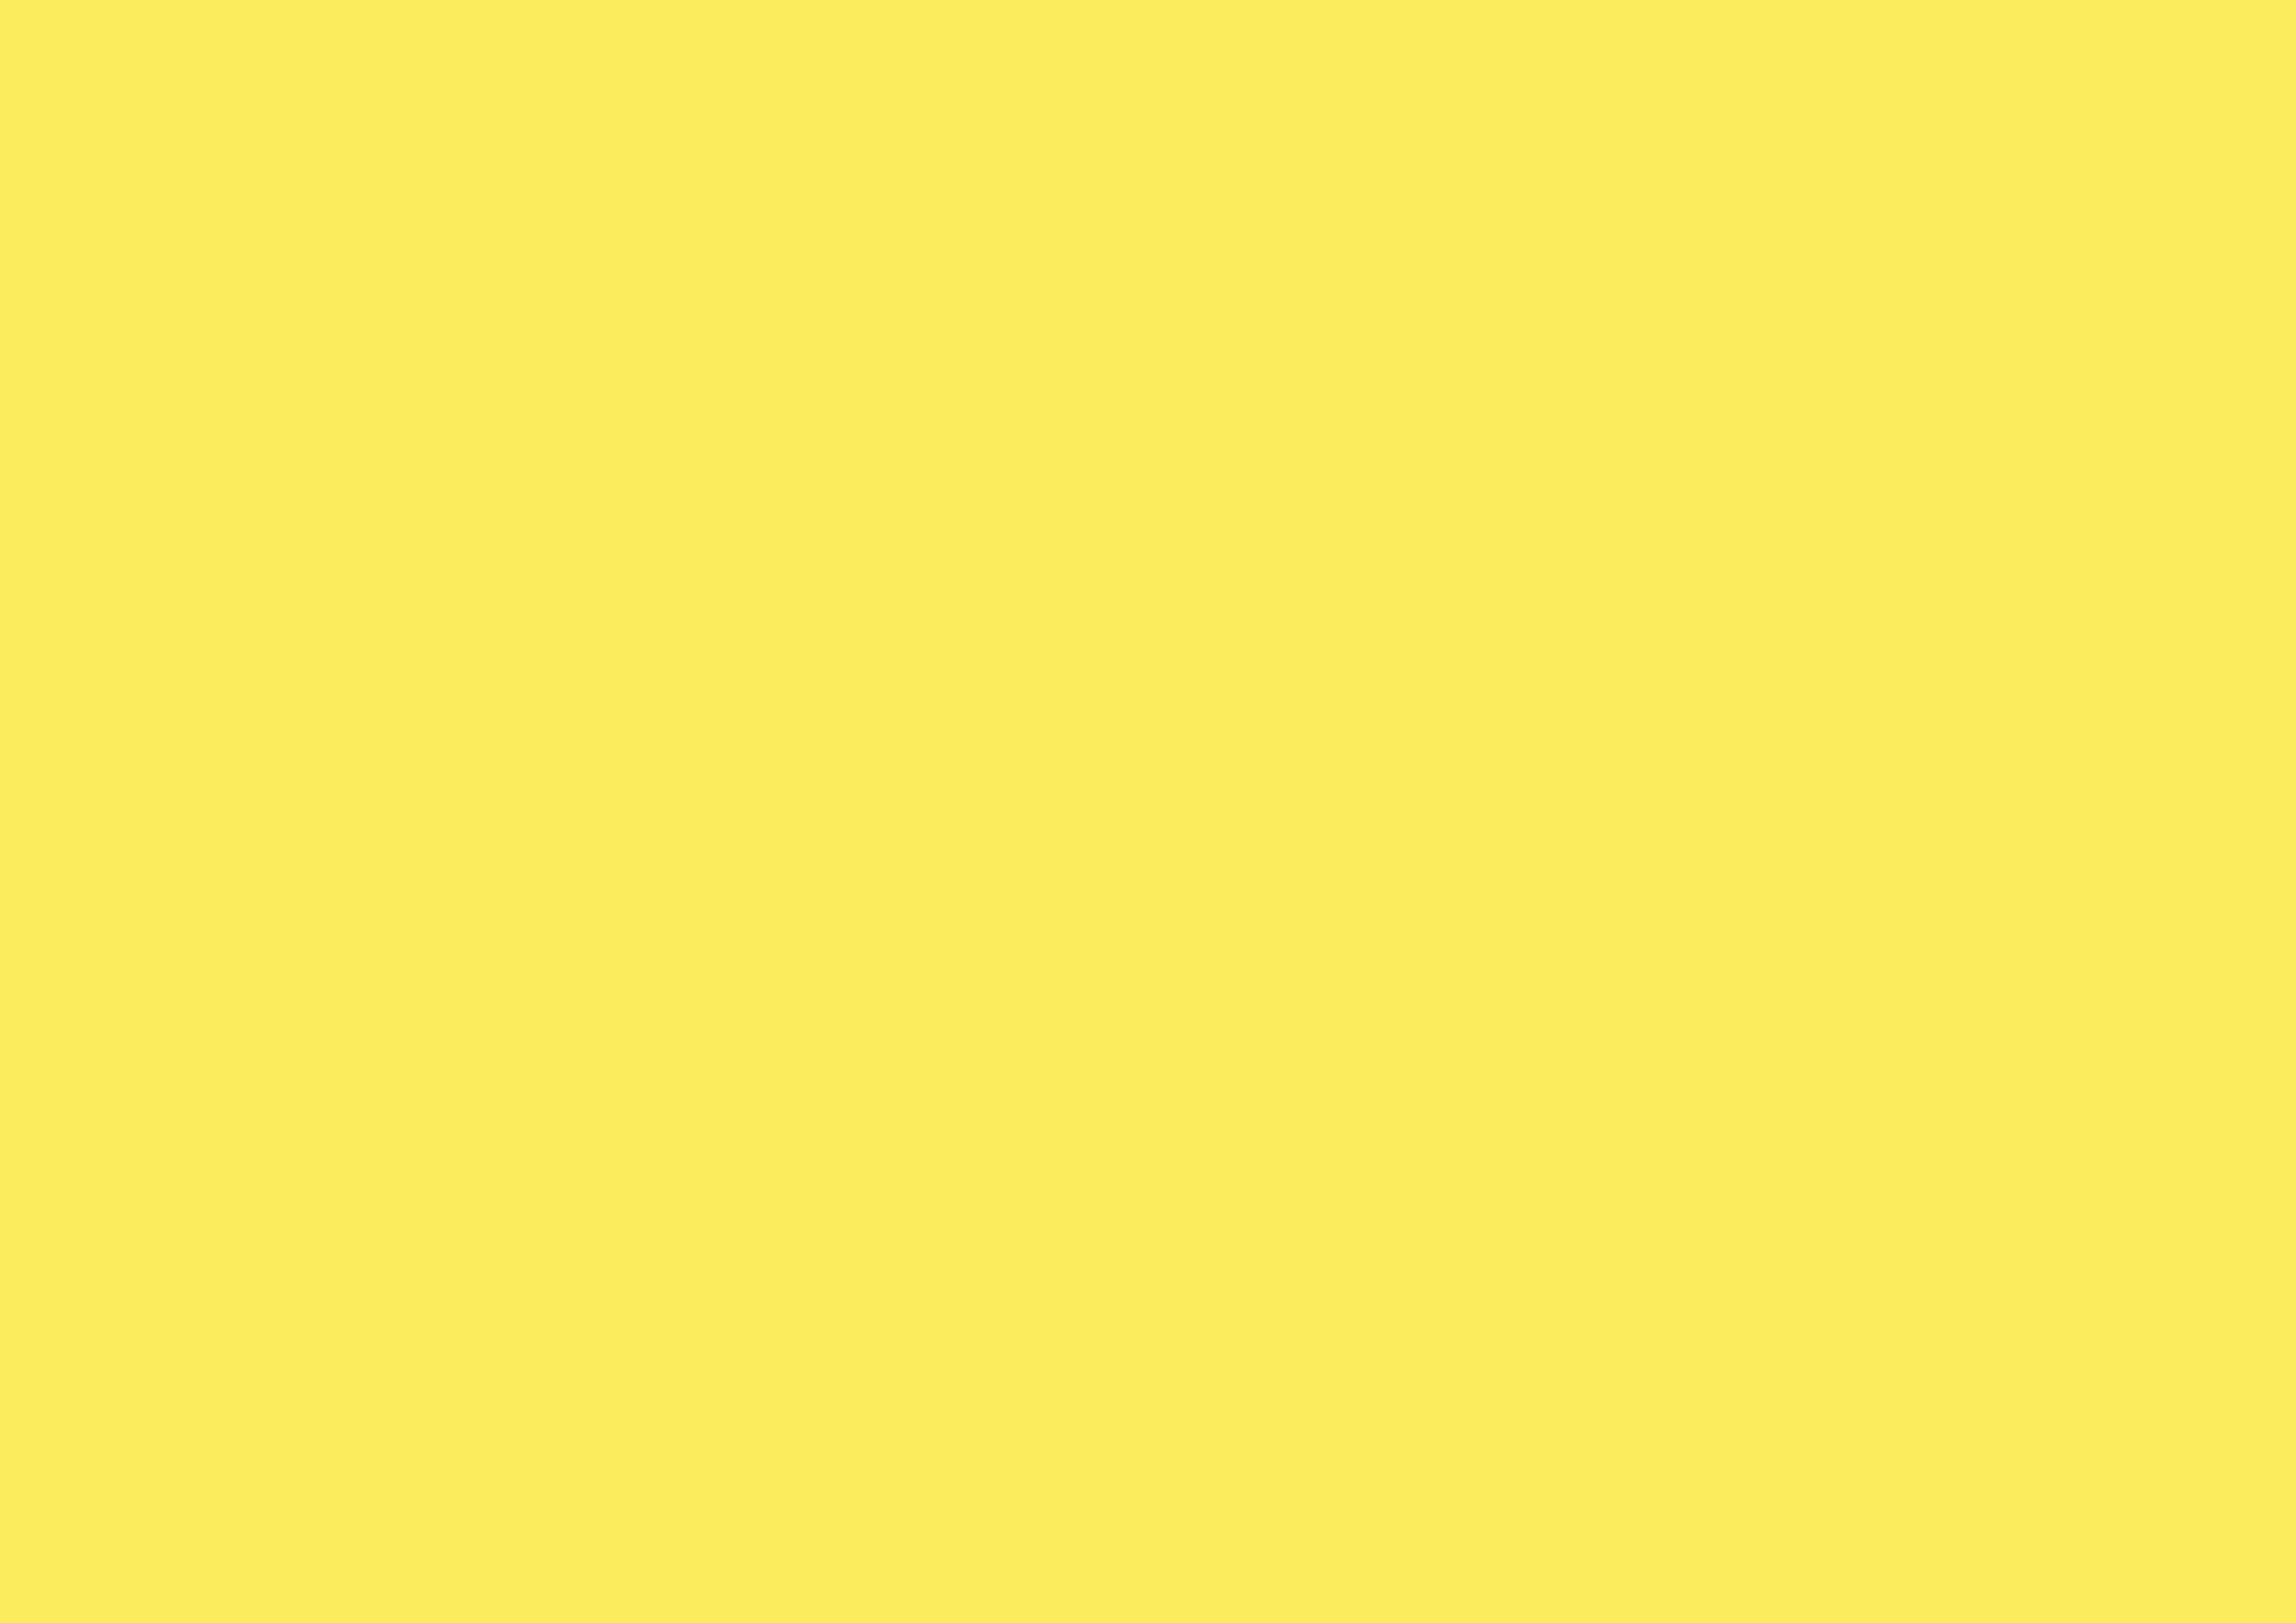 3508x2480 Corn Solid Color Background